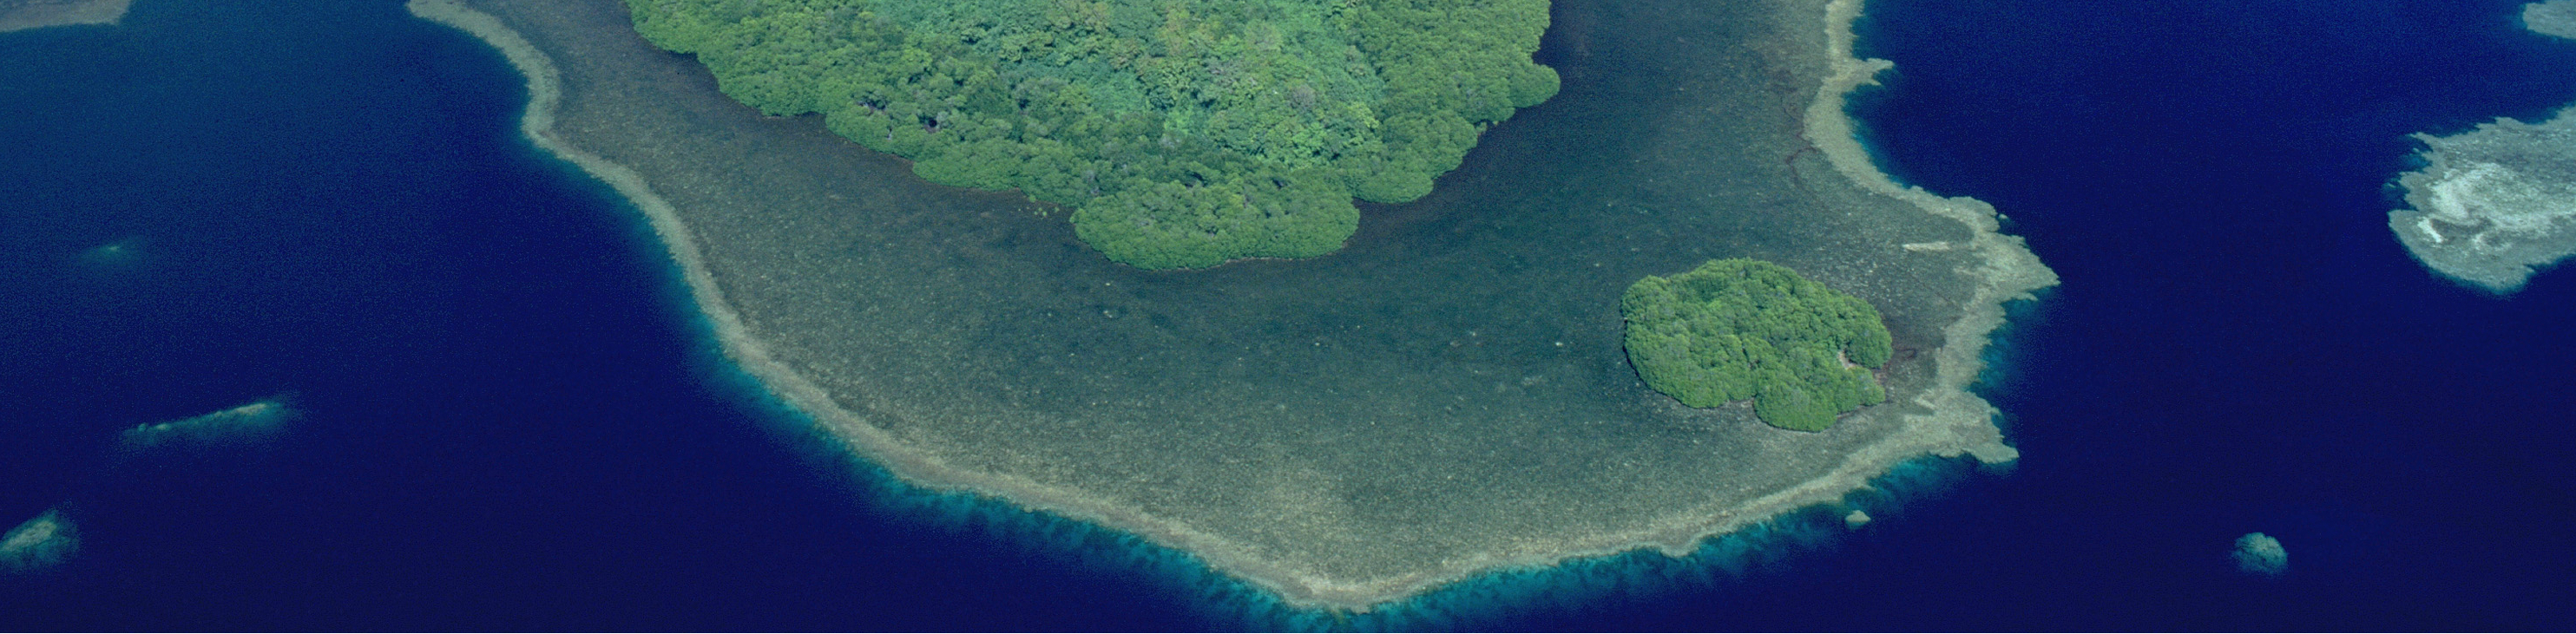 Aerial view of reef and mangrove in Pohnpei, Micronesia. Photo © Jez O'Hare